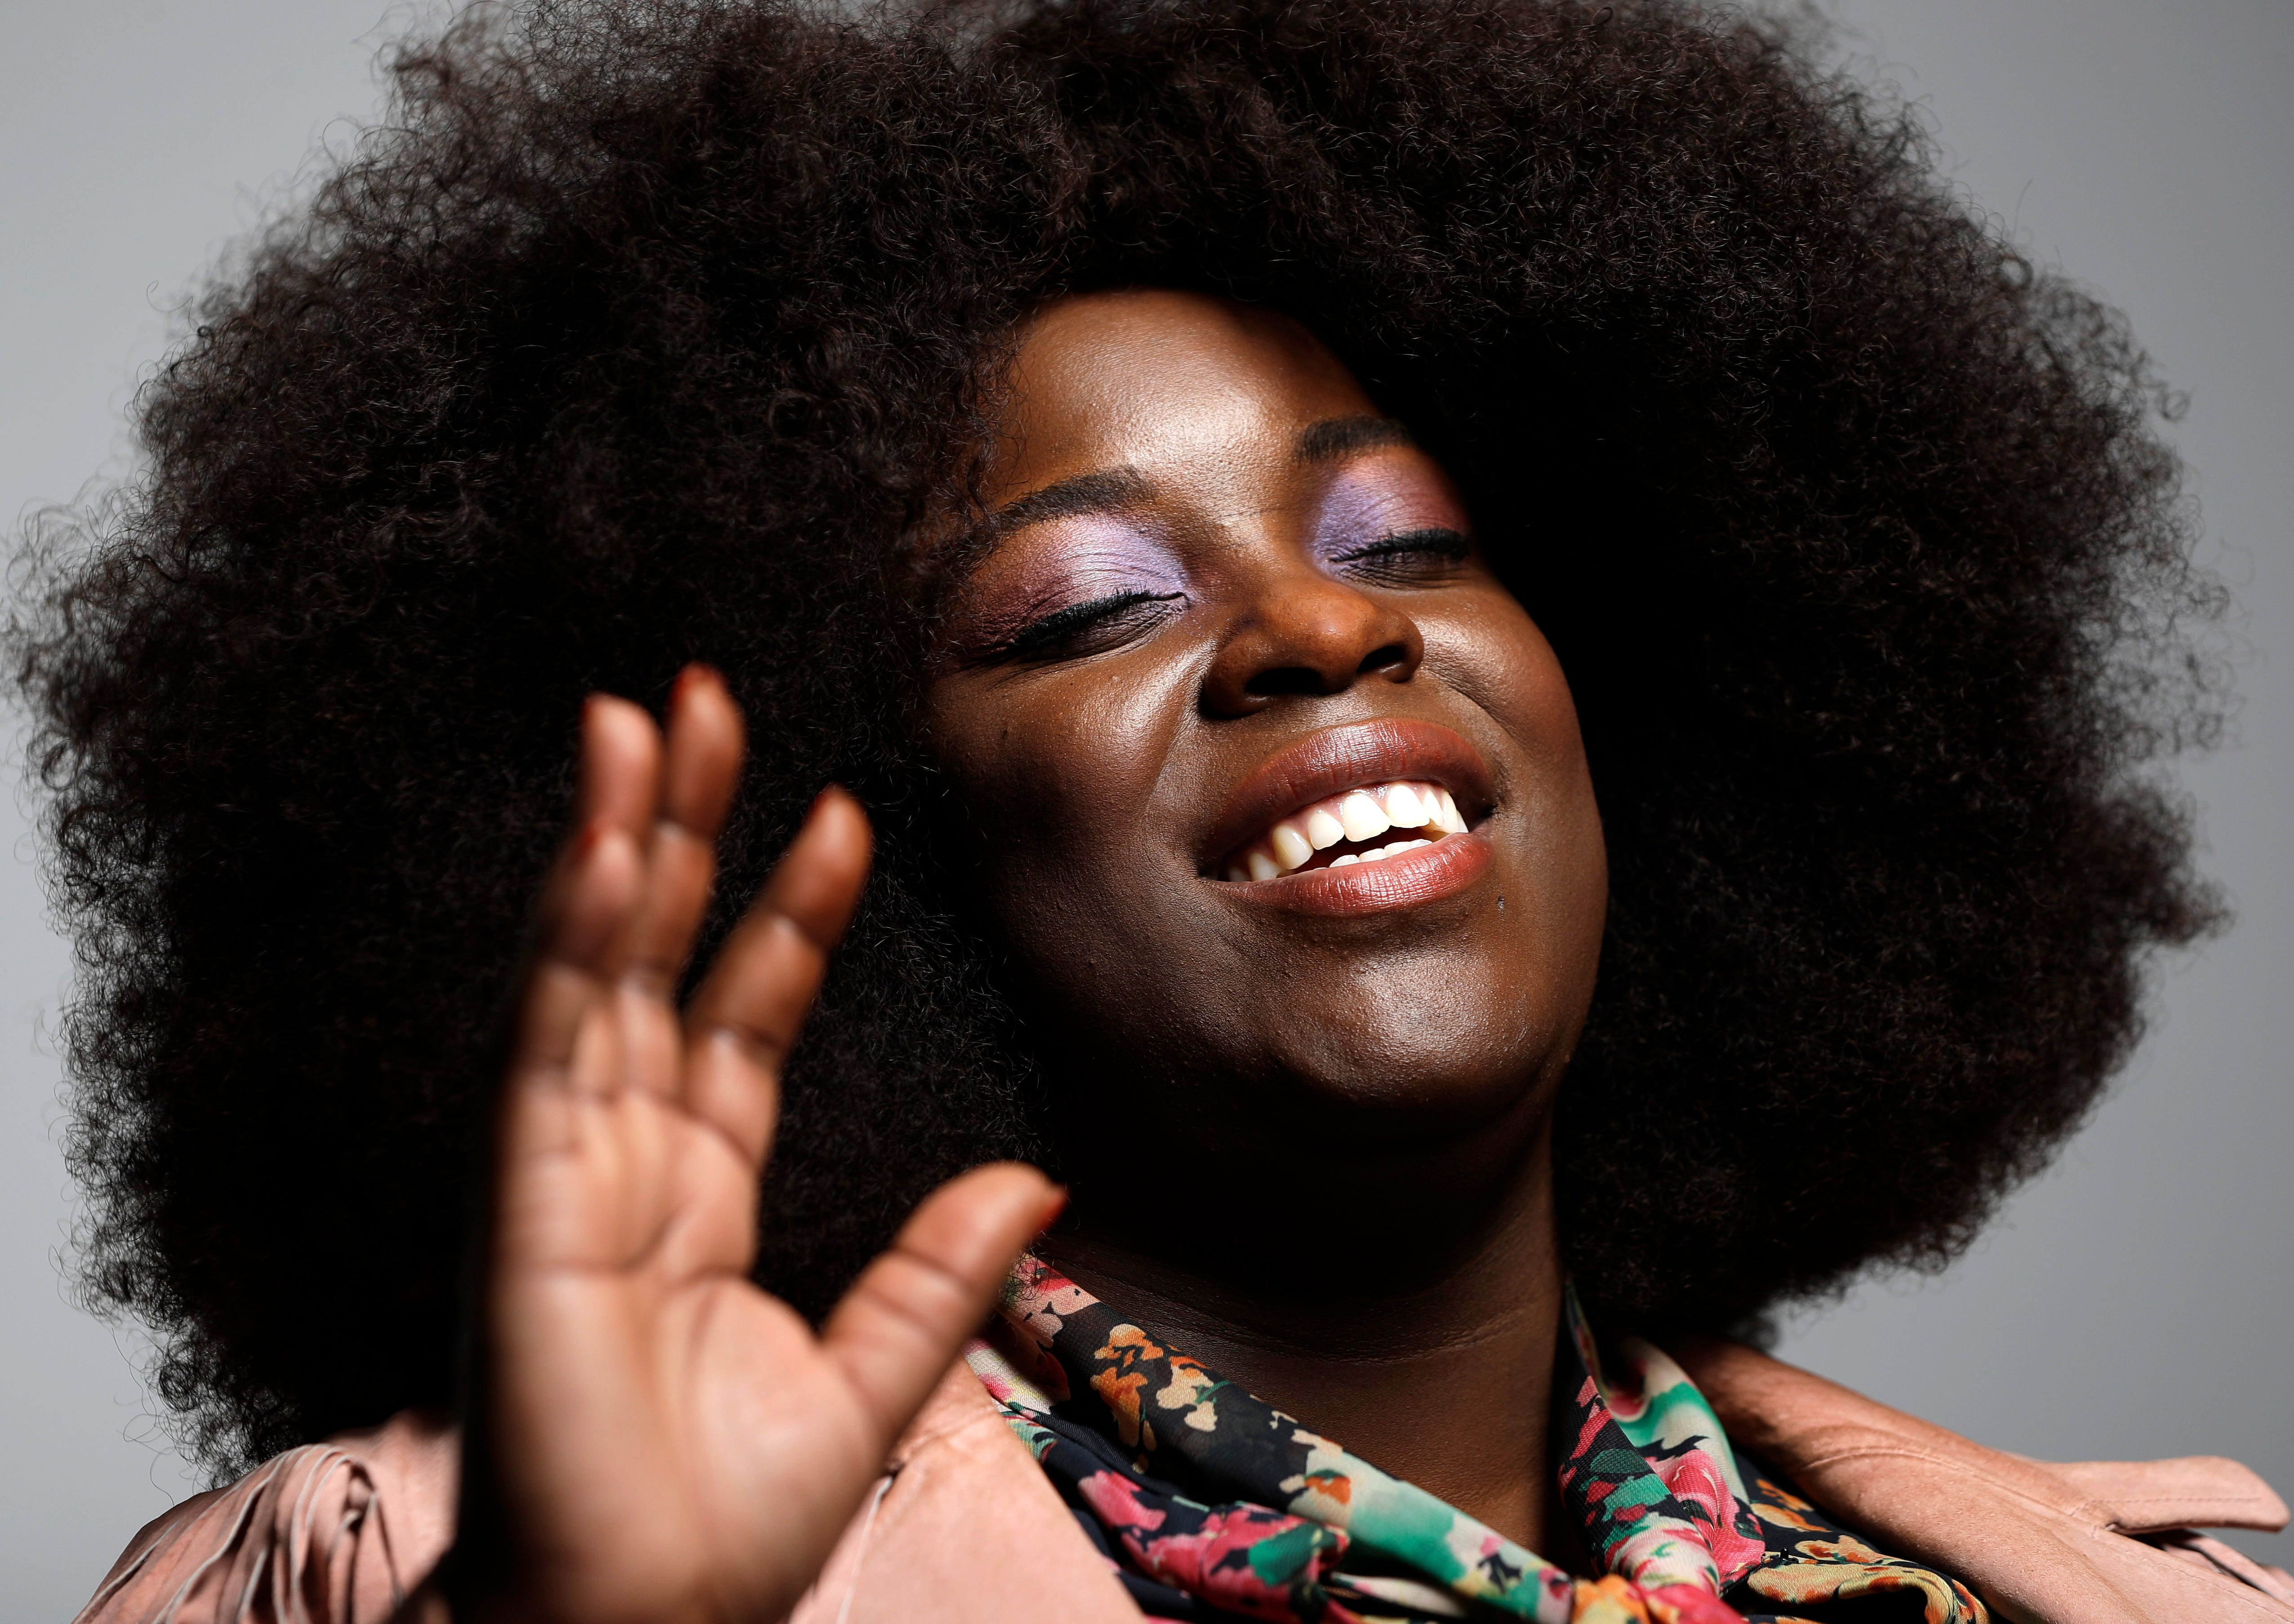 """This Feb. 21, 2019, photo shows British singer-songwriter Yola in Nashville, Tenn. Yola's new album, """"Walk Through Fire,"""" is an exploration of the intersection of soul, country and rock combined with her background in songwriting. Produced and co-written with Black Keys' Dan Auerbach, the record is an introduction to an artist who has spent most of her career behind the scenes as a songwriter or singing in bands."""